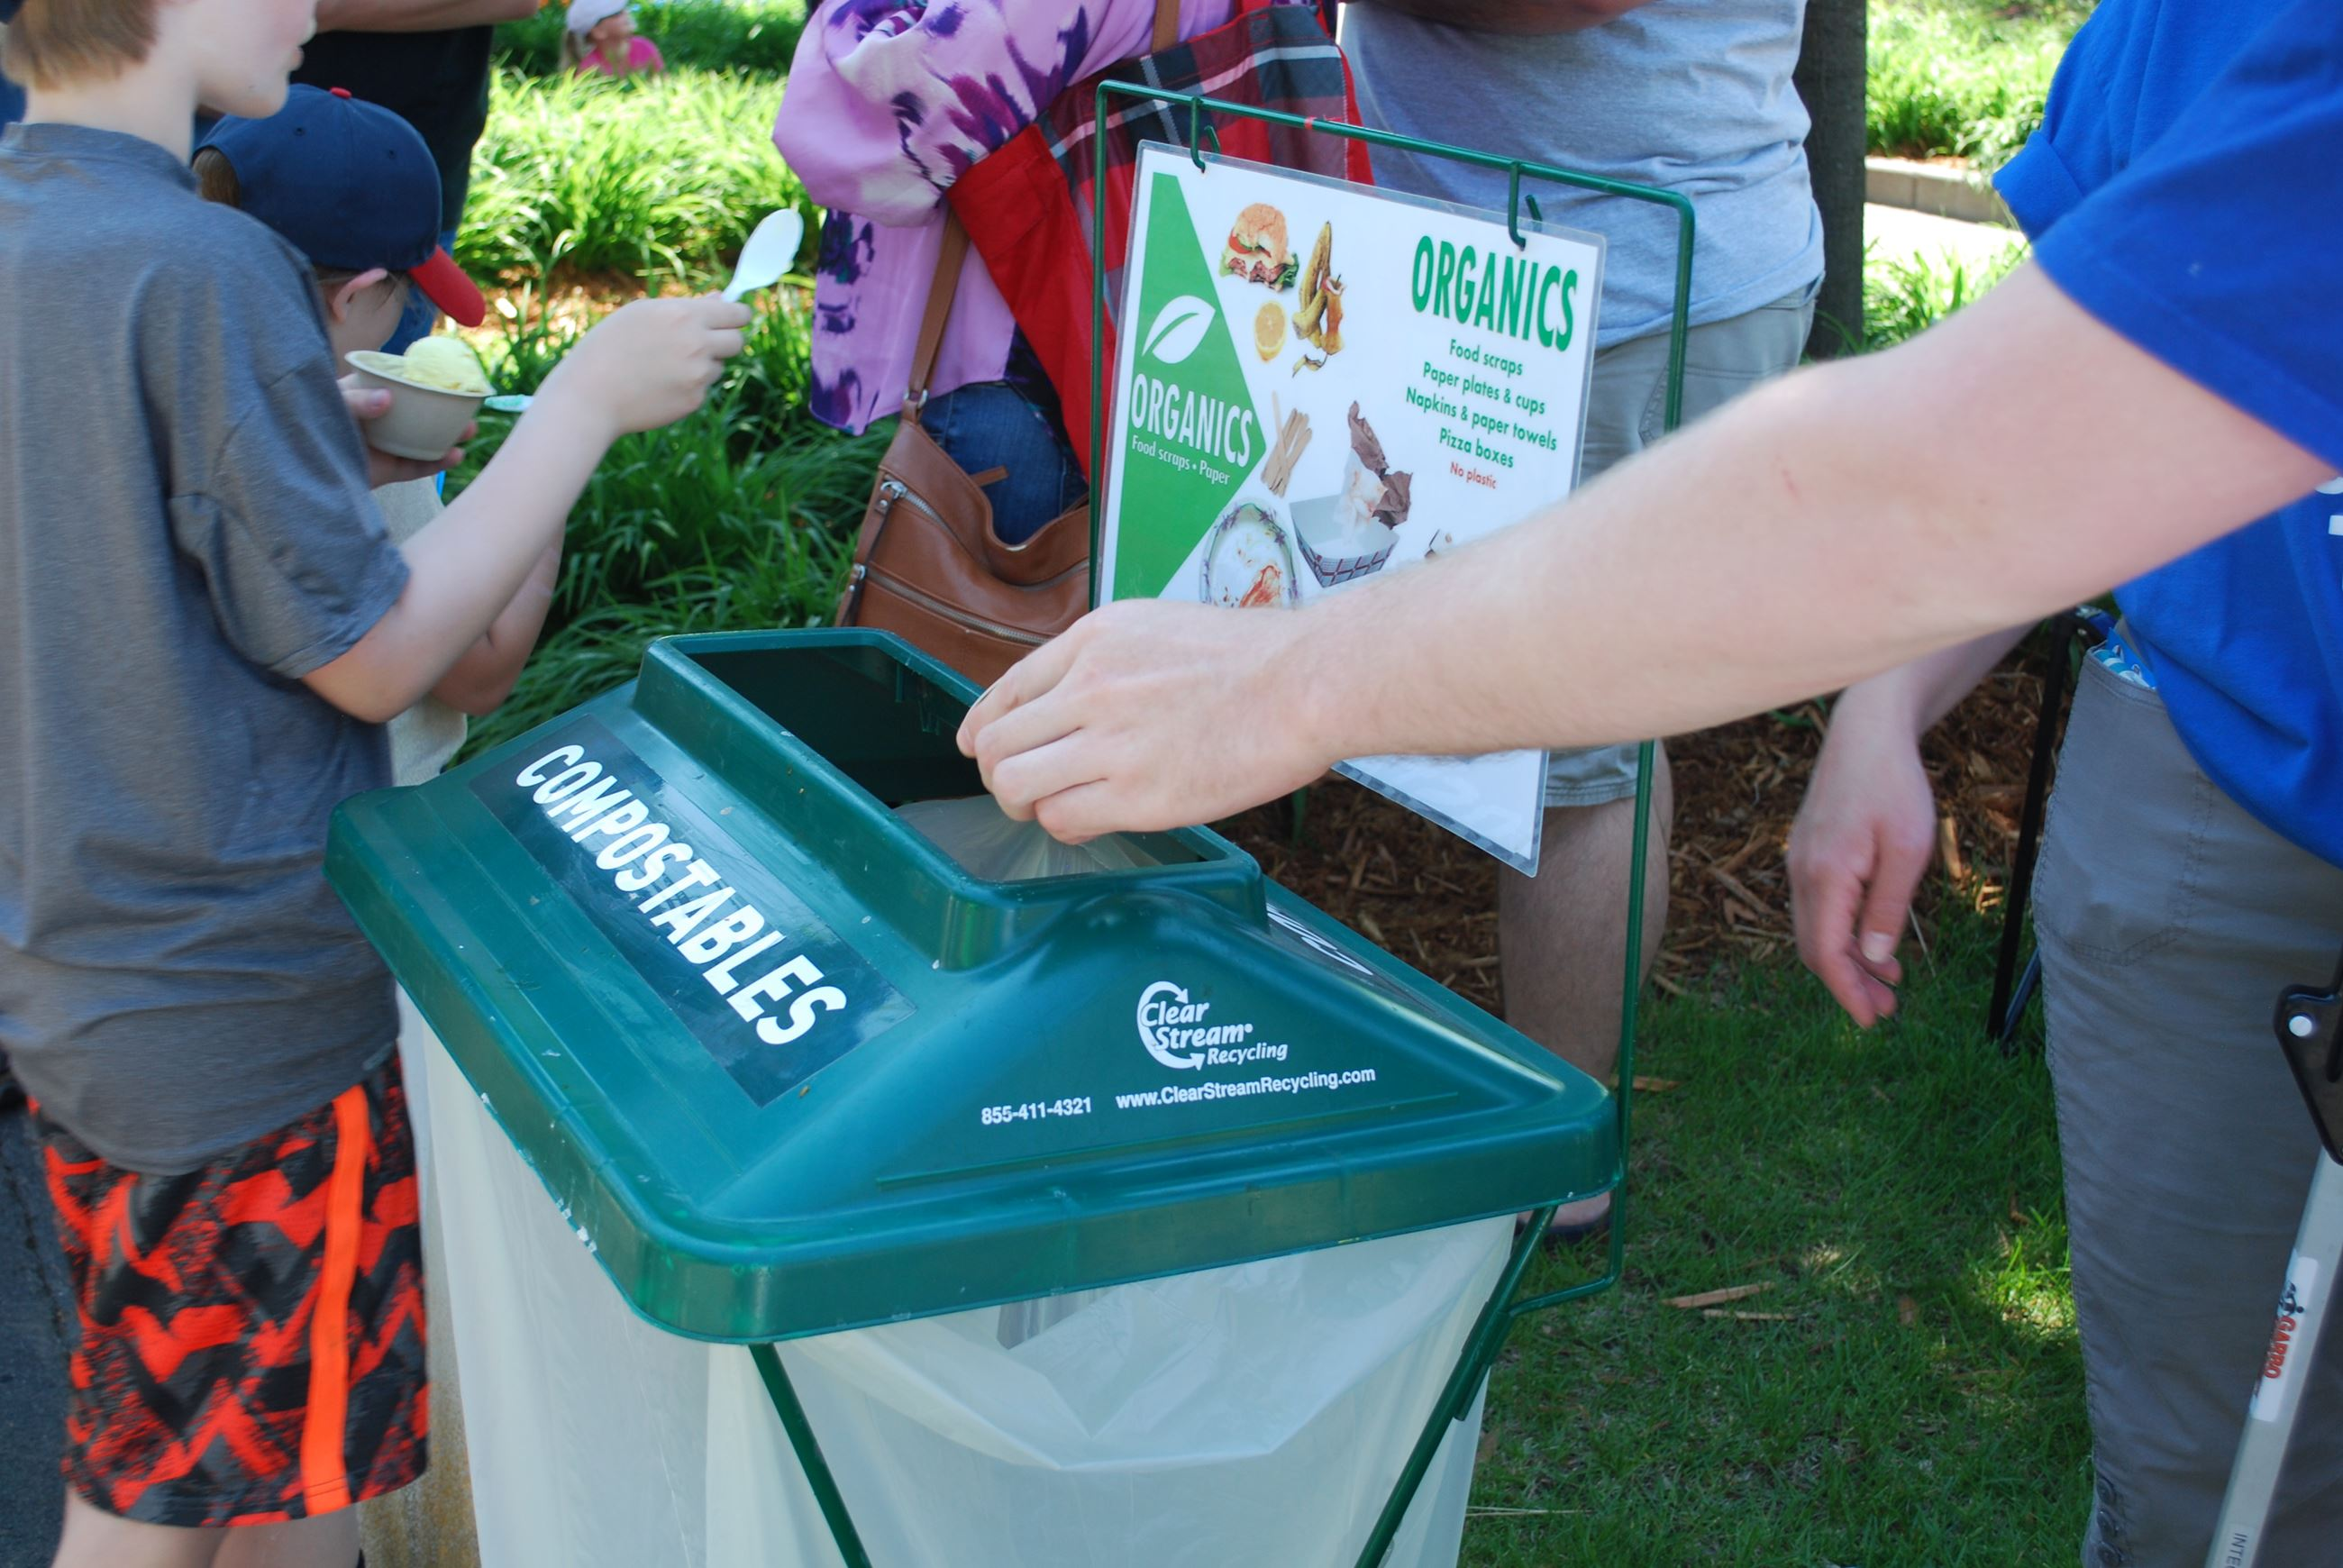 Event Organics Recycling